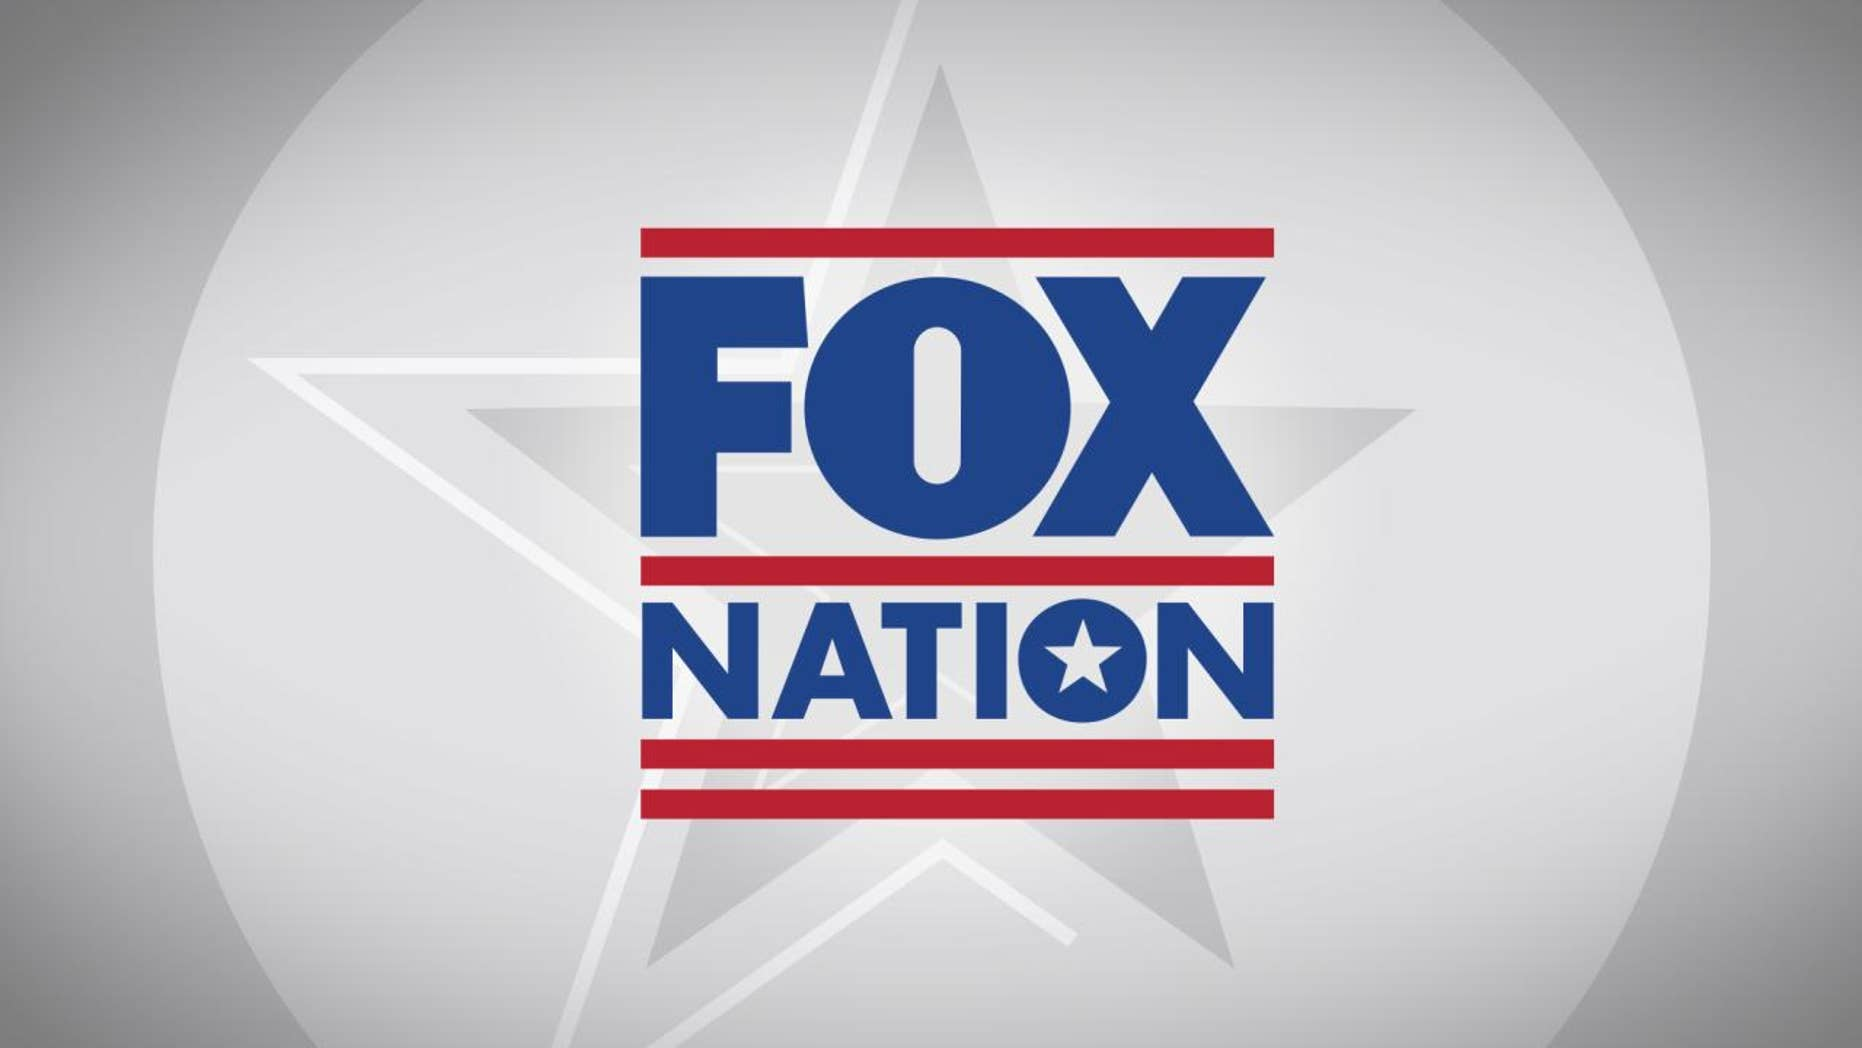 Westlake Legal Group foxnation Fox Nation stars to hold Q-and-A with fans at inaugural summit fox-news/topic/fox-news-flash fox-news/fox-nation fox-news/entertainment/media fox news fnc/entertainment fnc David Montanaro article 38812bfb-c1d8-5dbf-b1ad-c8ed891cbef9